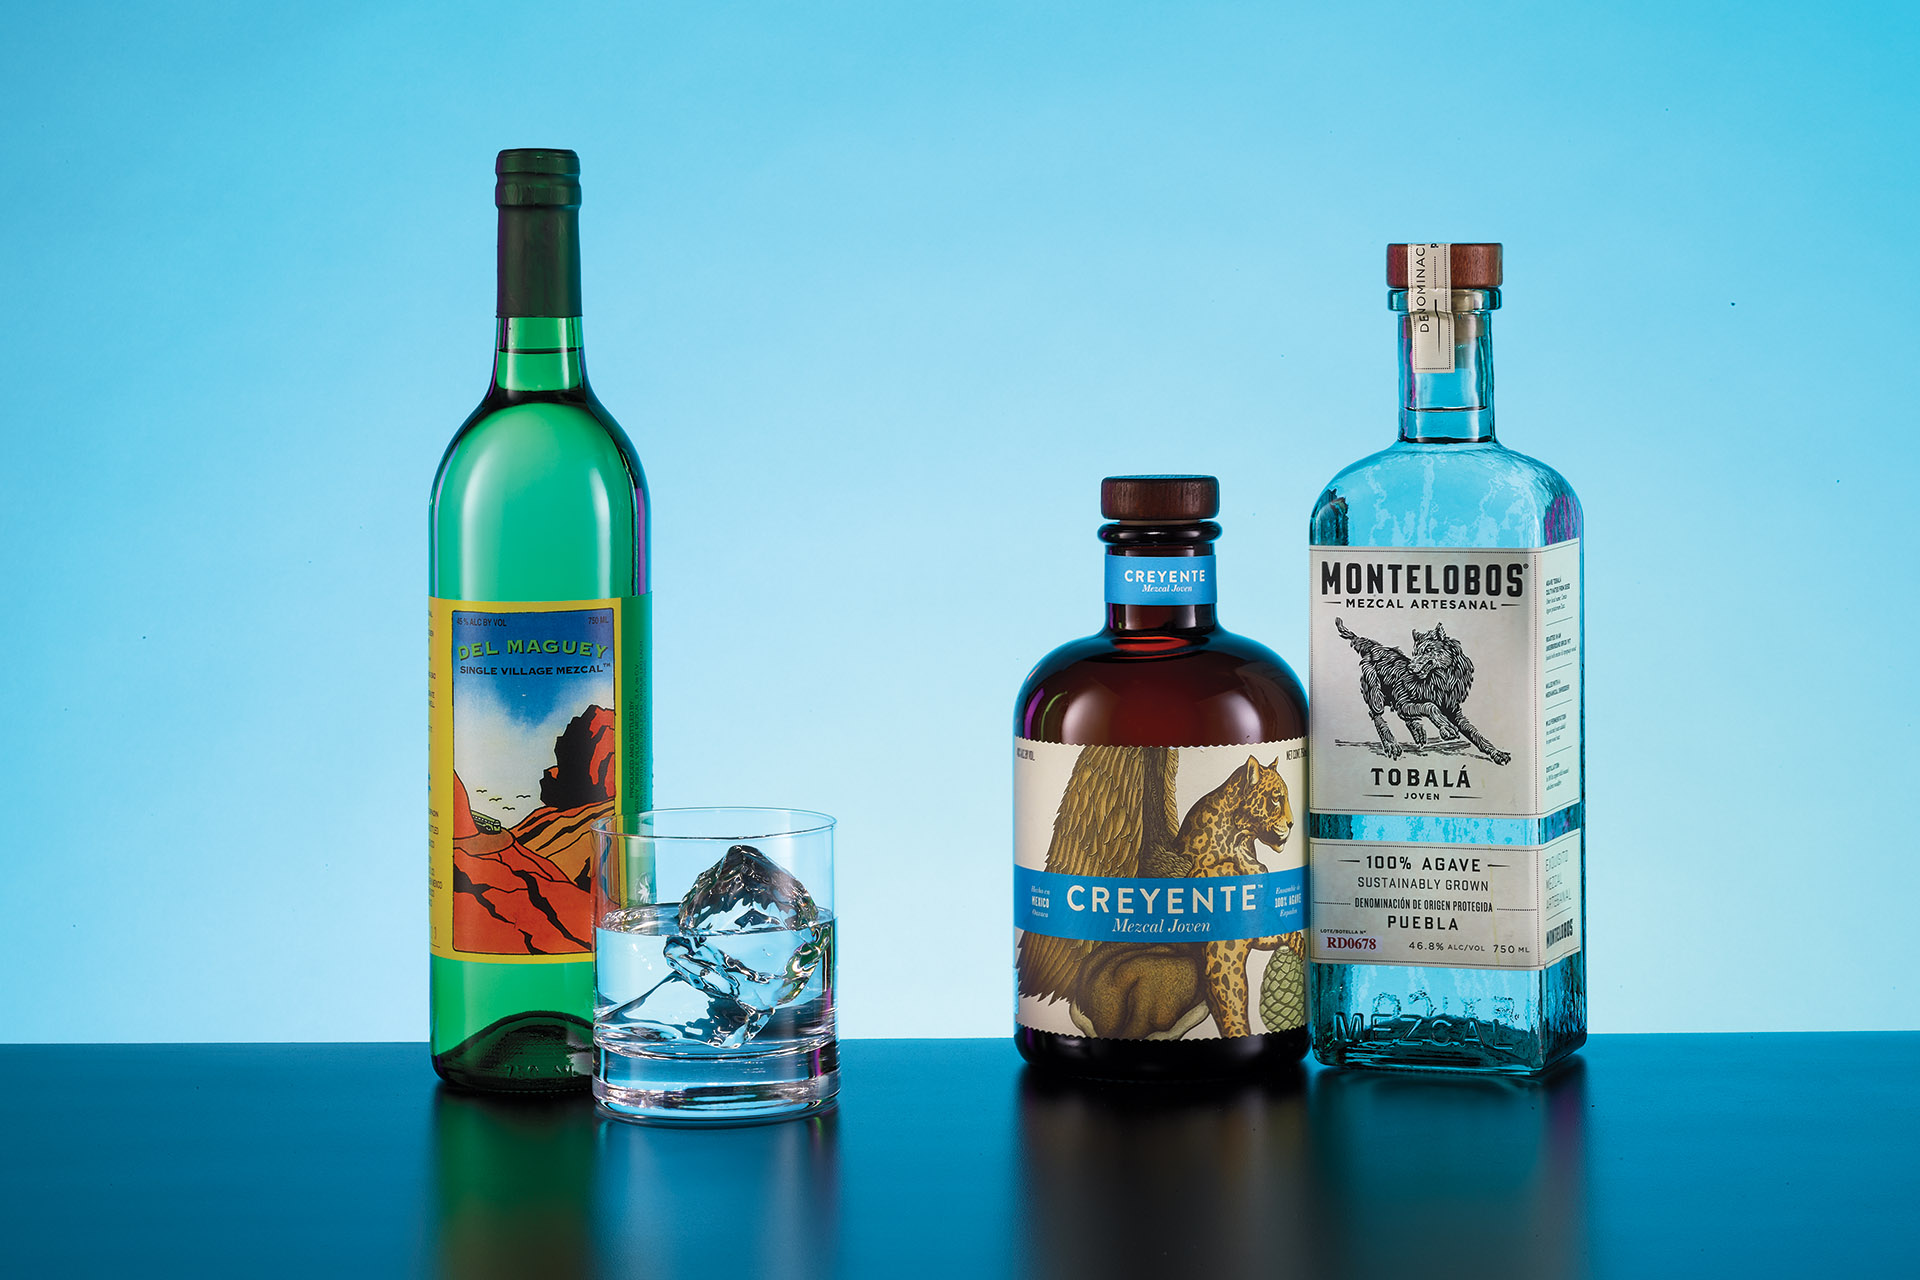 From left to right; Del Maguey Single Village Mezcal Espadin Especial (Mexico; Pernod Ricard, New York, NY); Creyente Mezcal Joven (Mexico; Proximo Spirits, Jersey City, NJ); and Montelobos Tobalá (Mexico; William Grant, New York, NY)